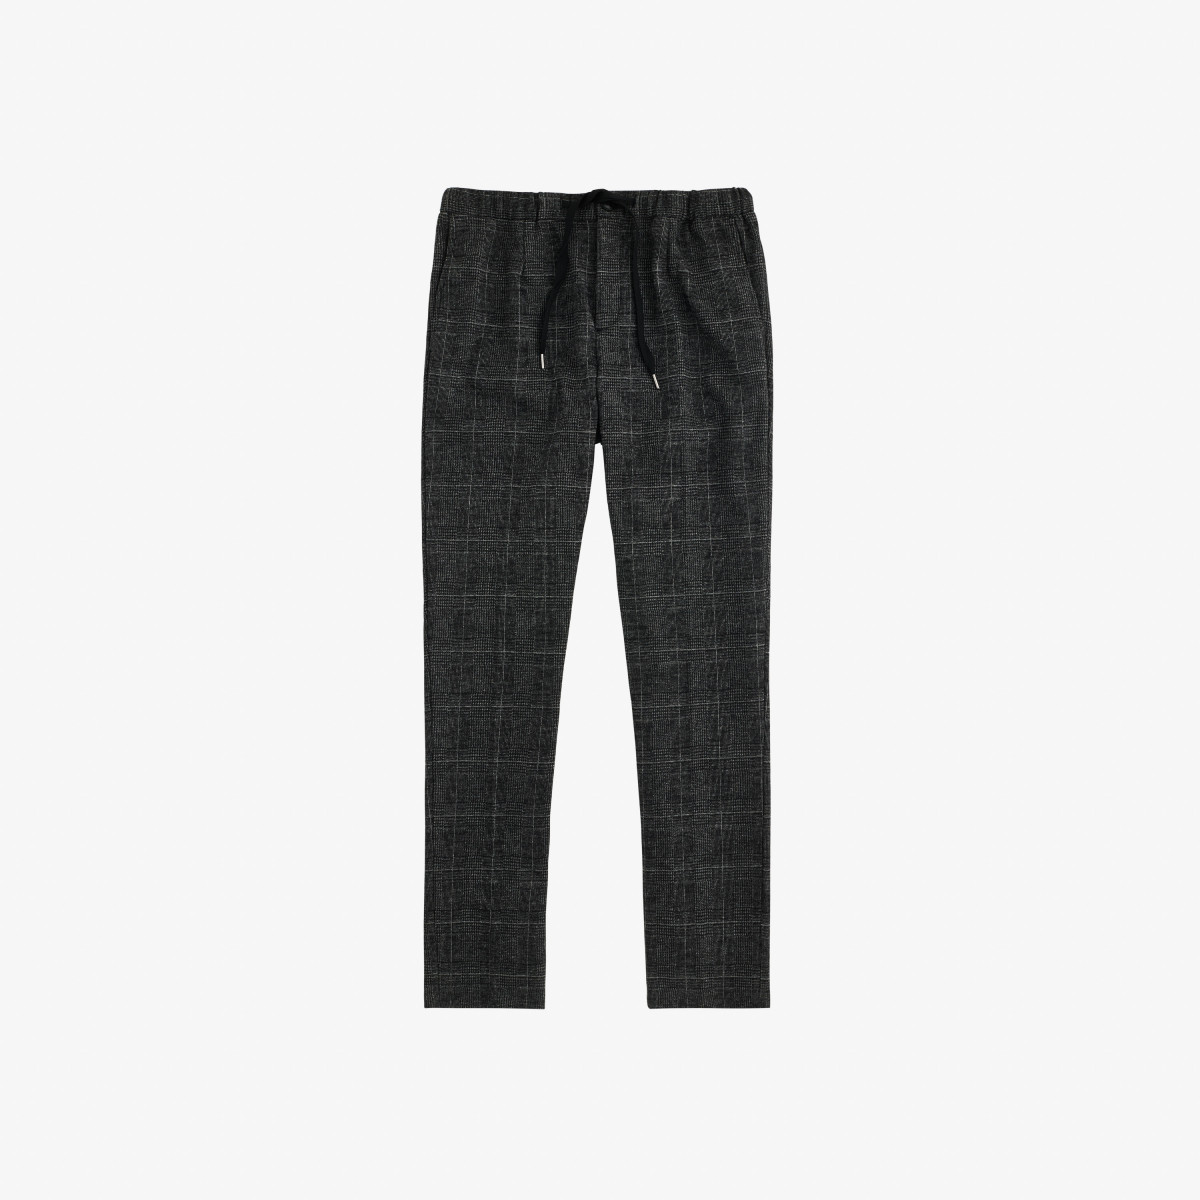 WOOL PANT COULISSE BLACK/LIGHT GREY